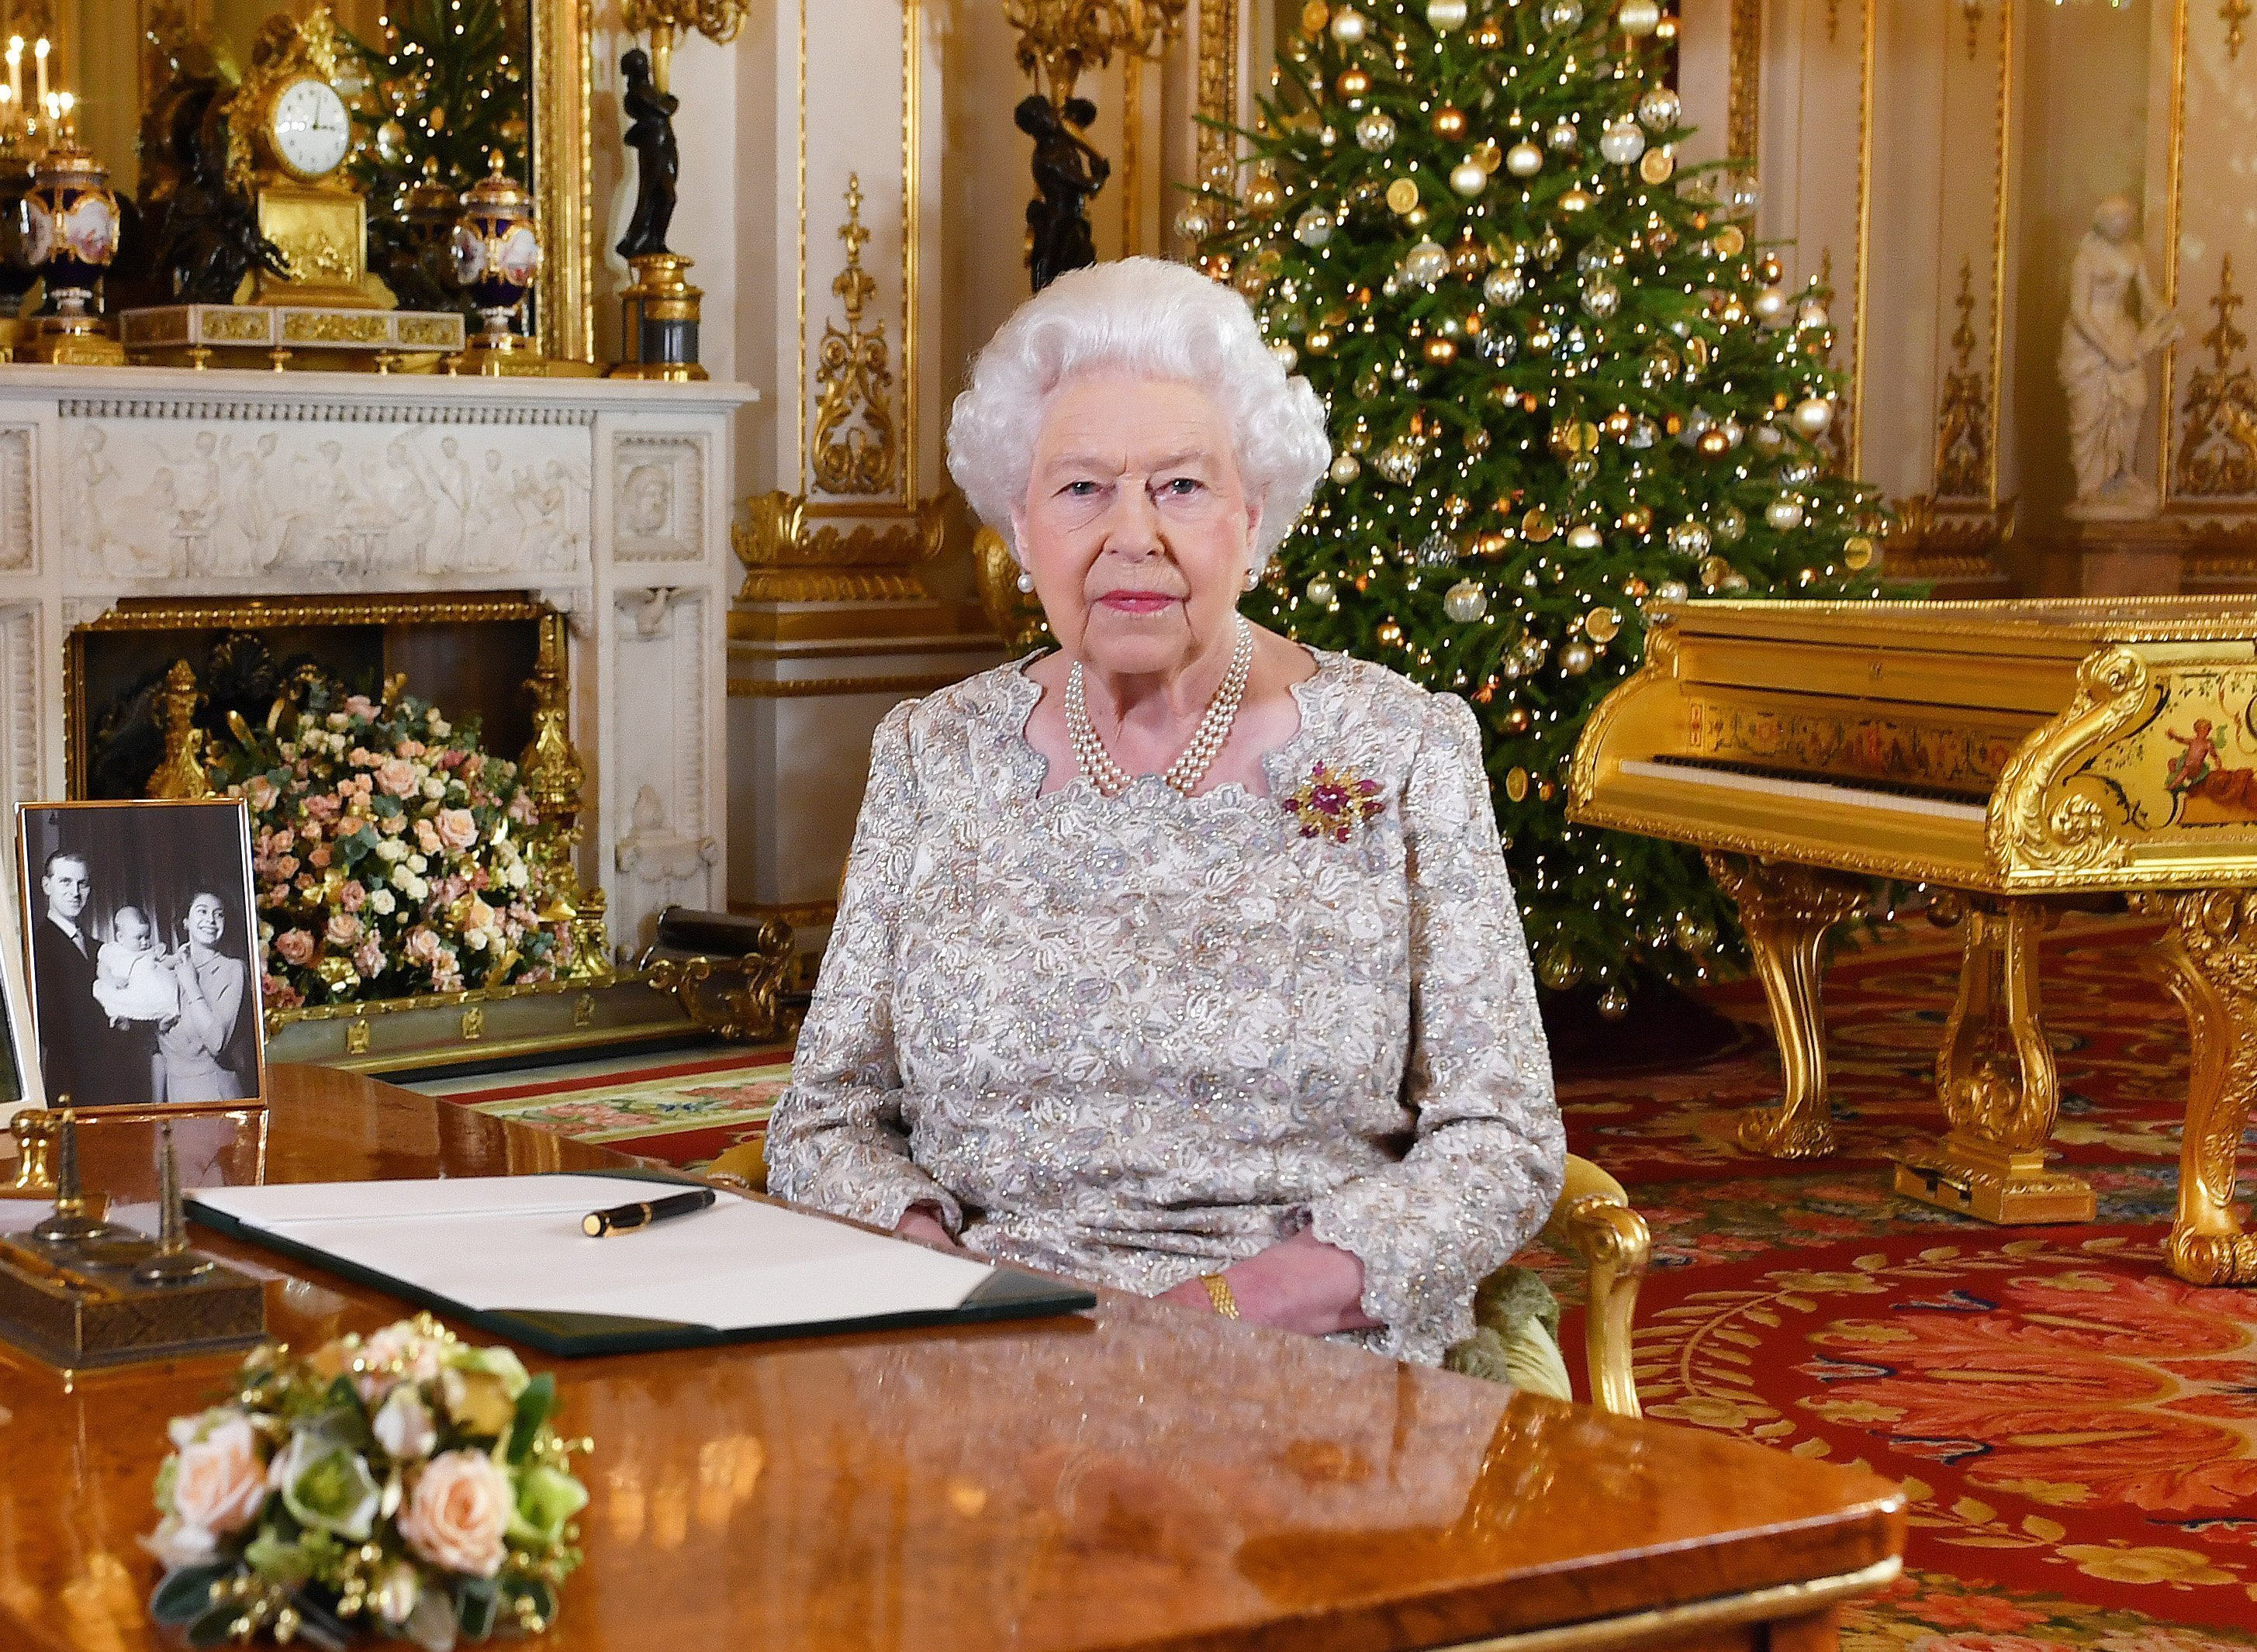 La reine Elizabeth II pose pour une photo après avoir enregistré son message annuel de Noël, dans le White Drawing Room de Buckingham Palace dans une photo publiée le 24 décembre 2018 à Londres, au Royaume-Uni. | Source: Getty Images.